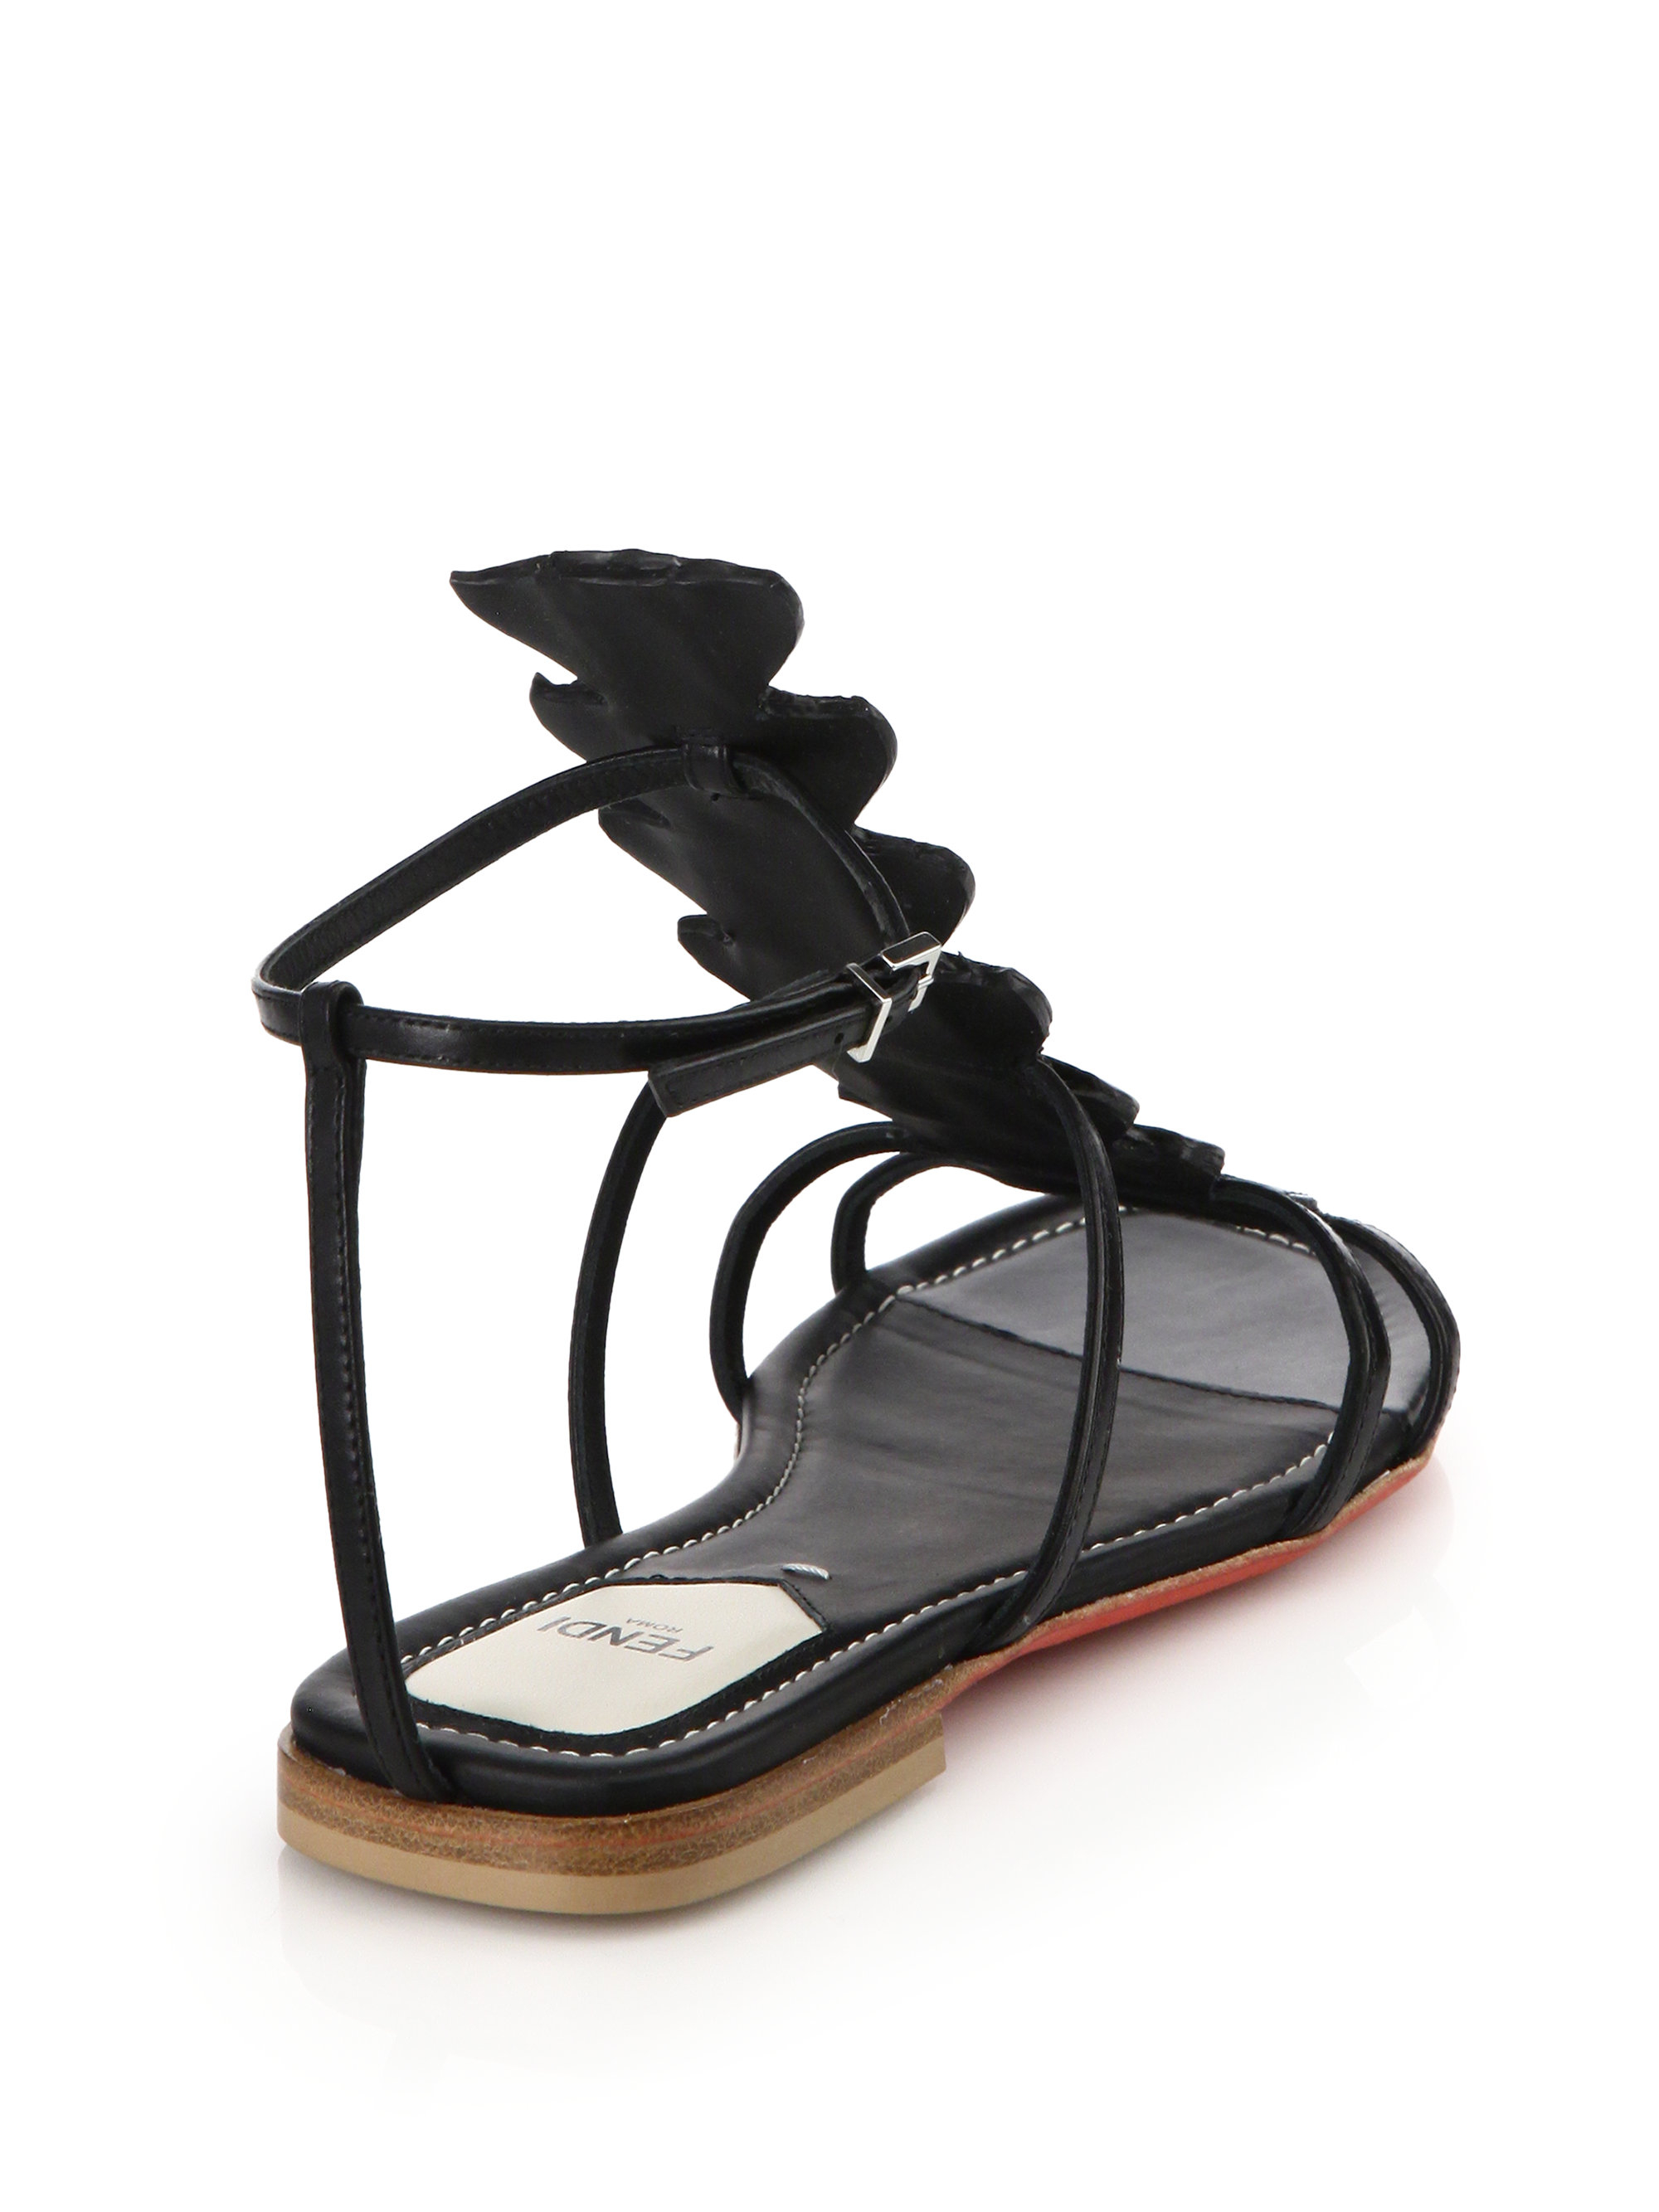 15e9e54506f Lyst - Fendi Ava Crocodile   Leather Flat Sandals in Black